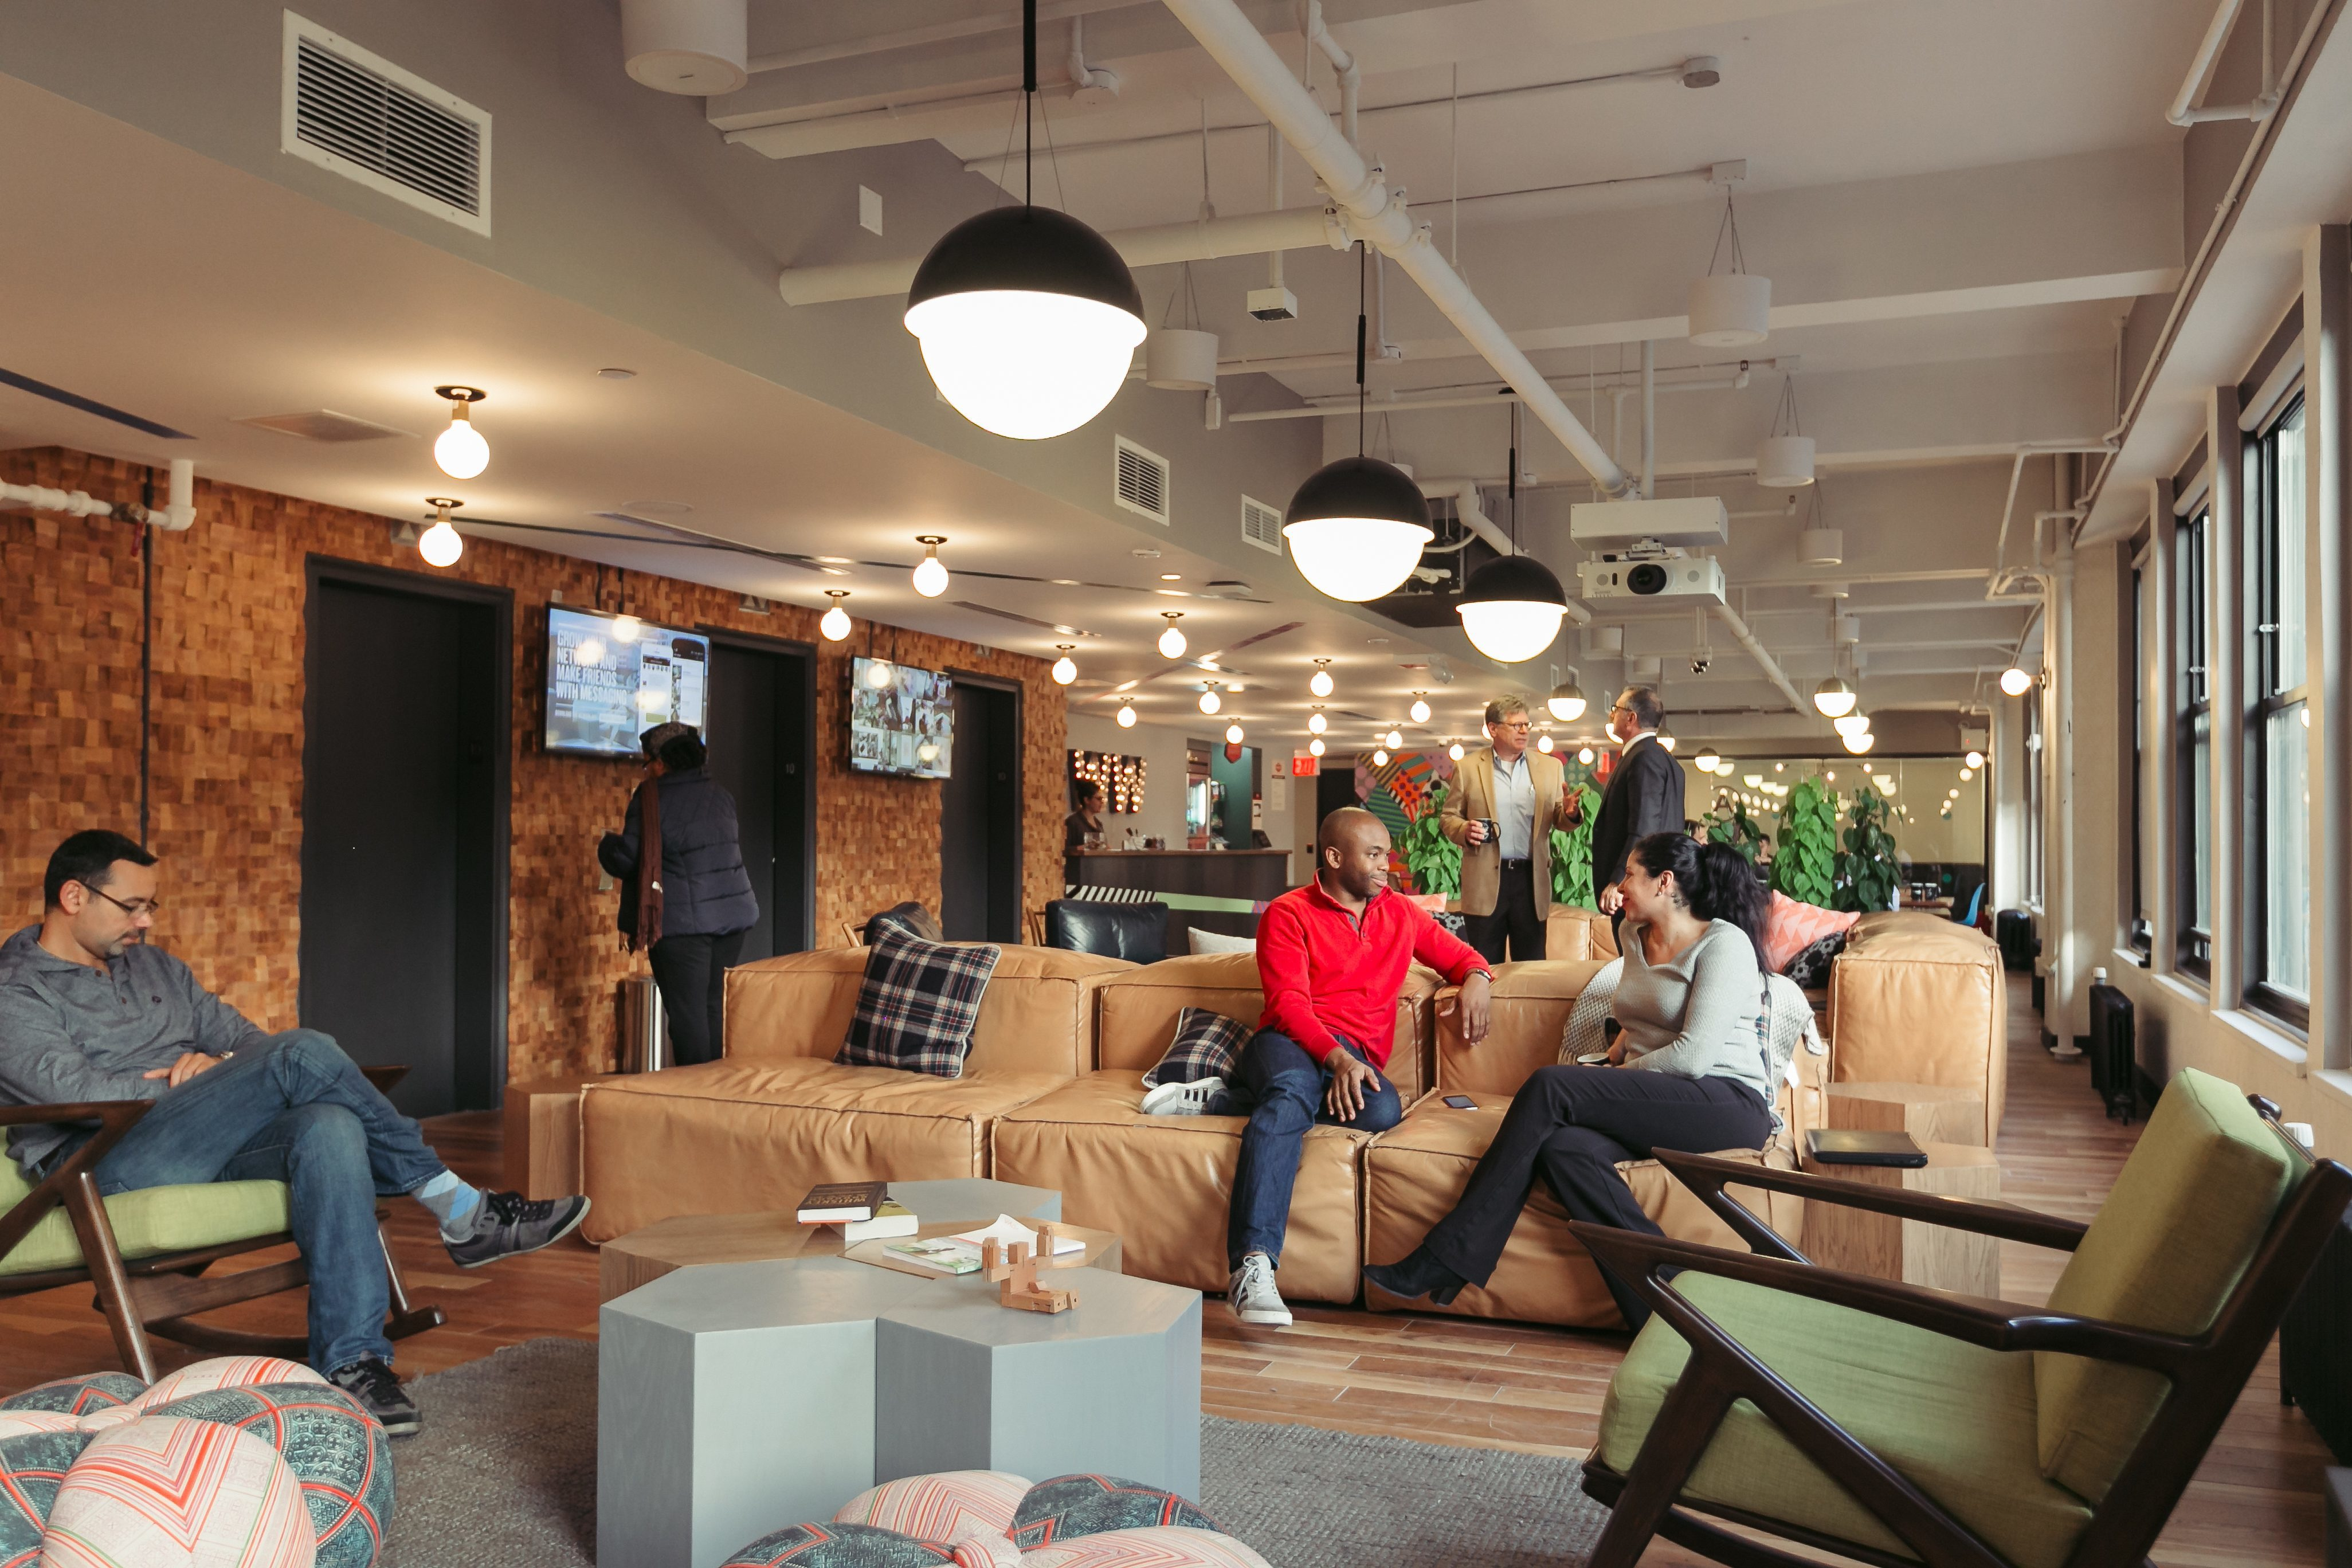 Take a tour of wework penn station officelovin 39 for Interior design events nyc